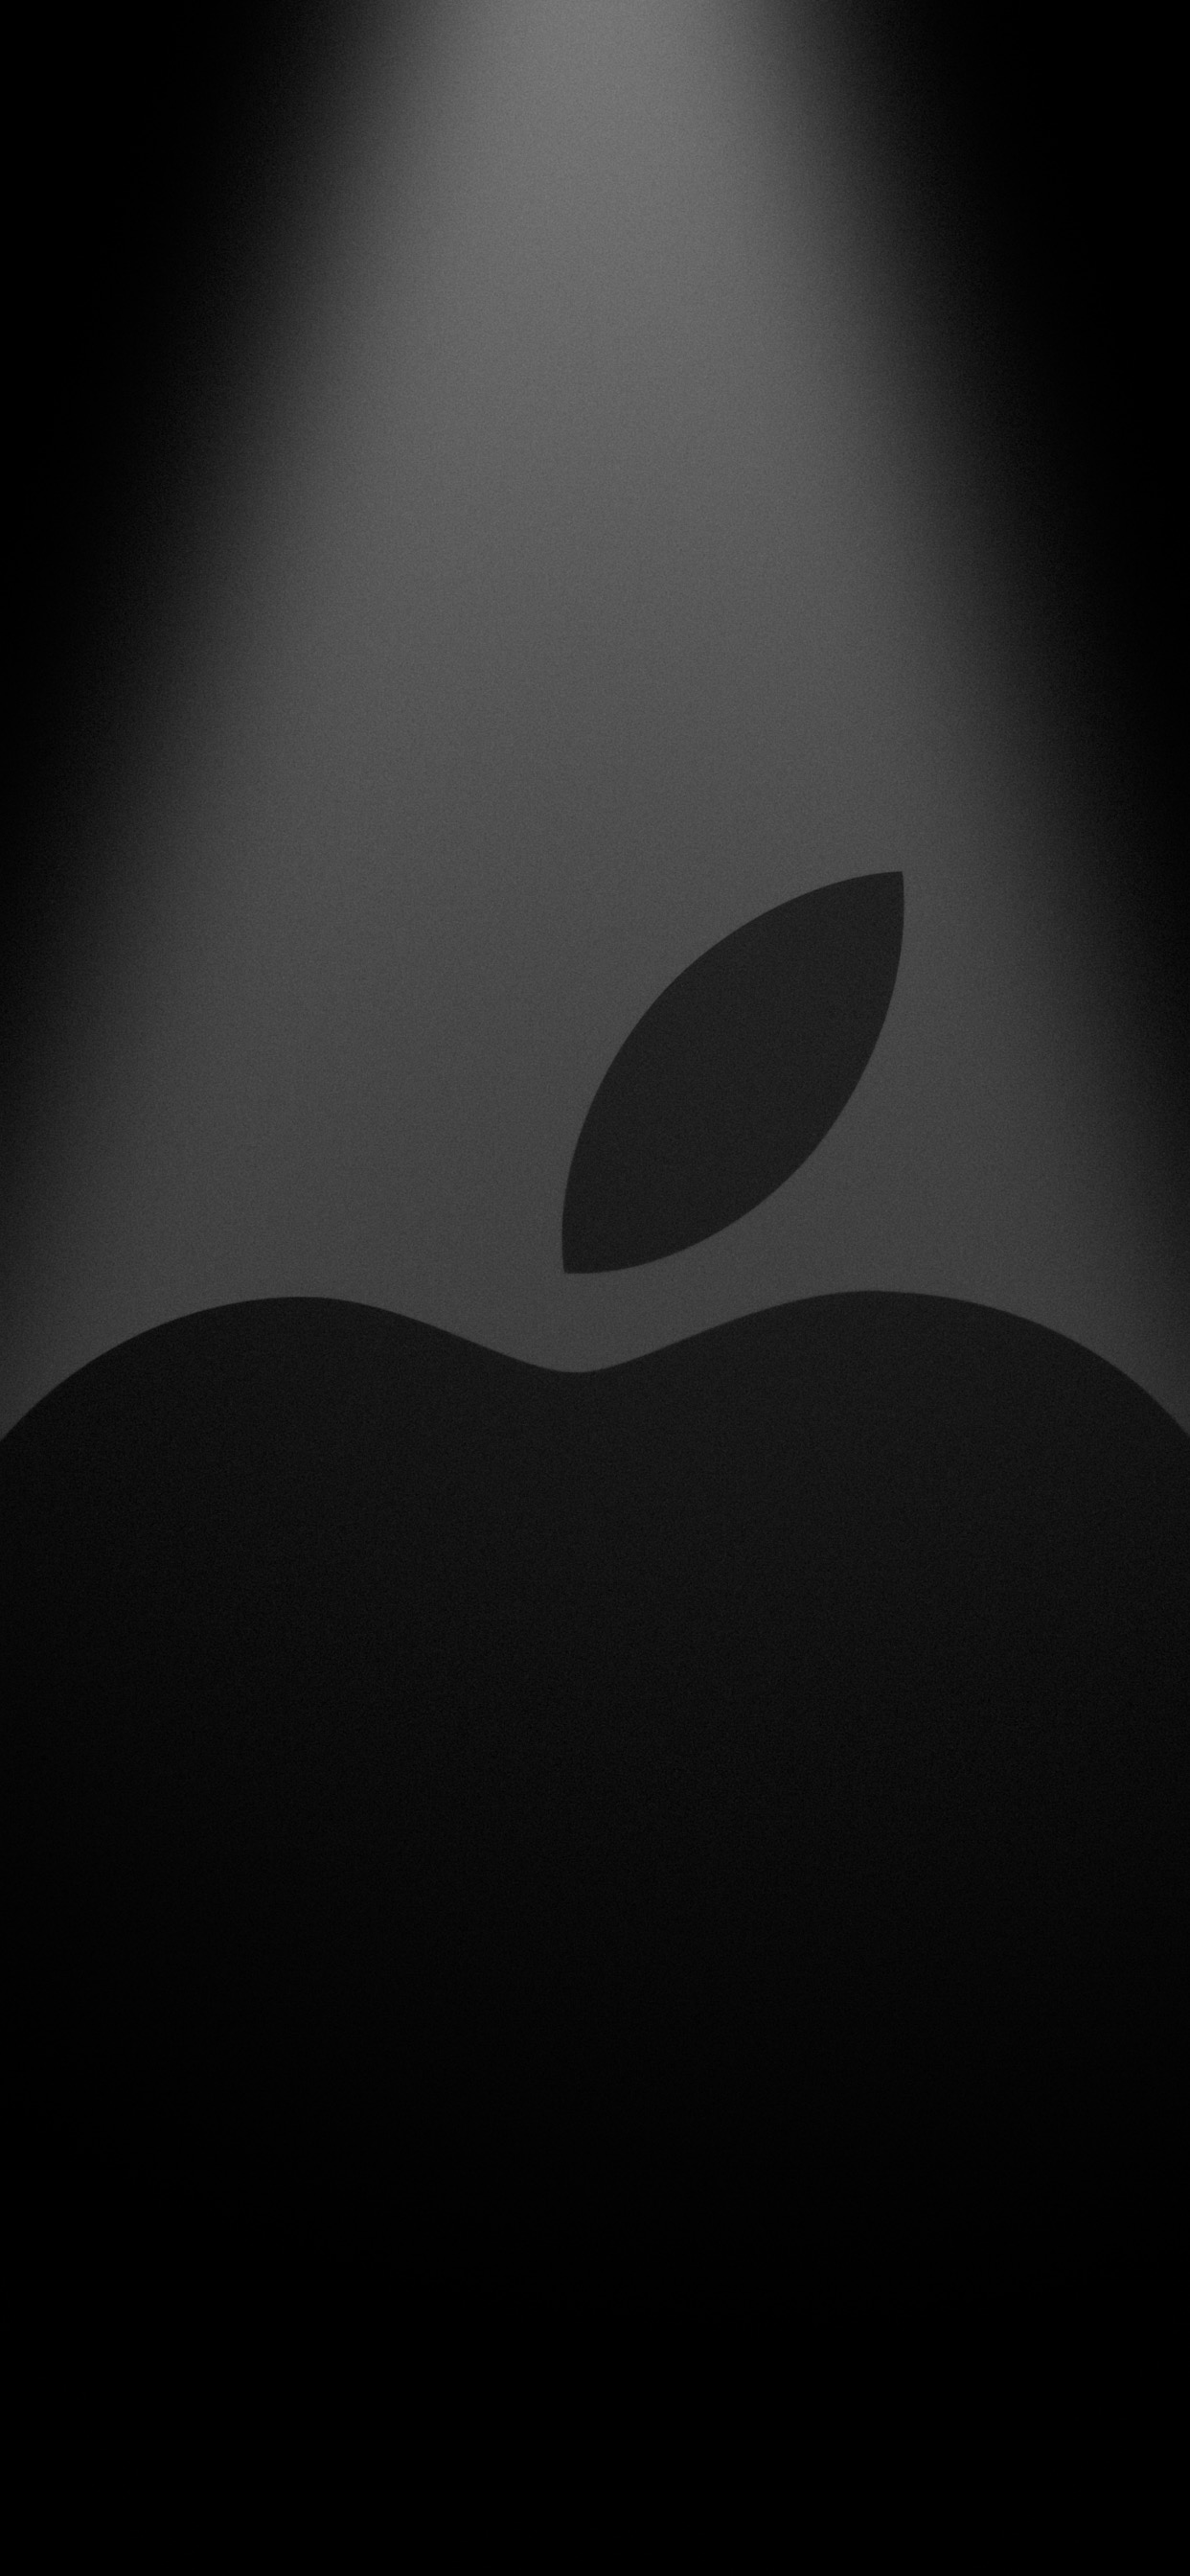 iPhone wallpaper apple event march 2019 v2 Apples March 25th event